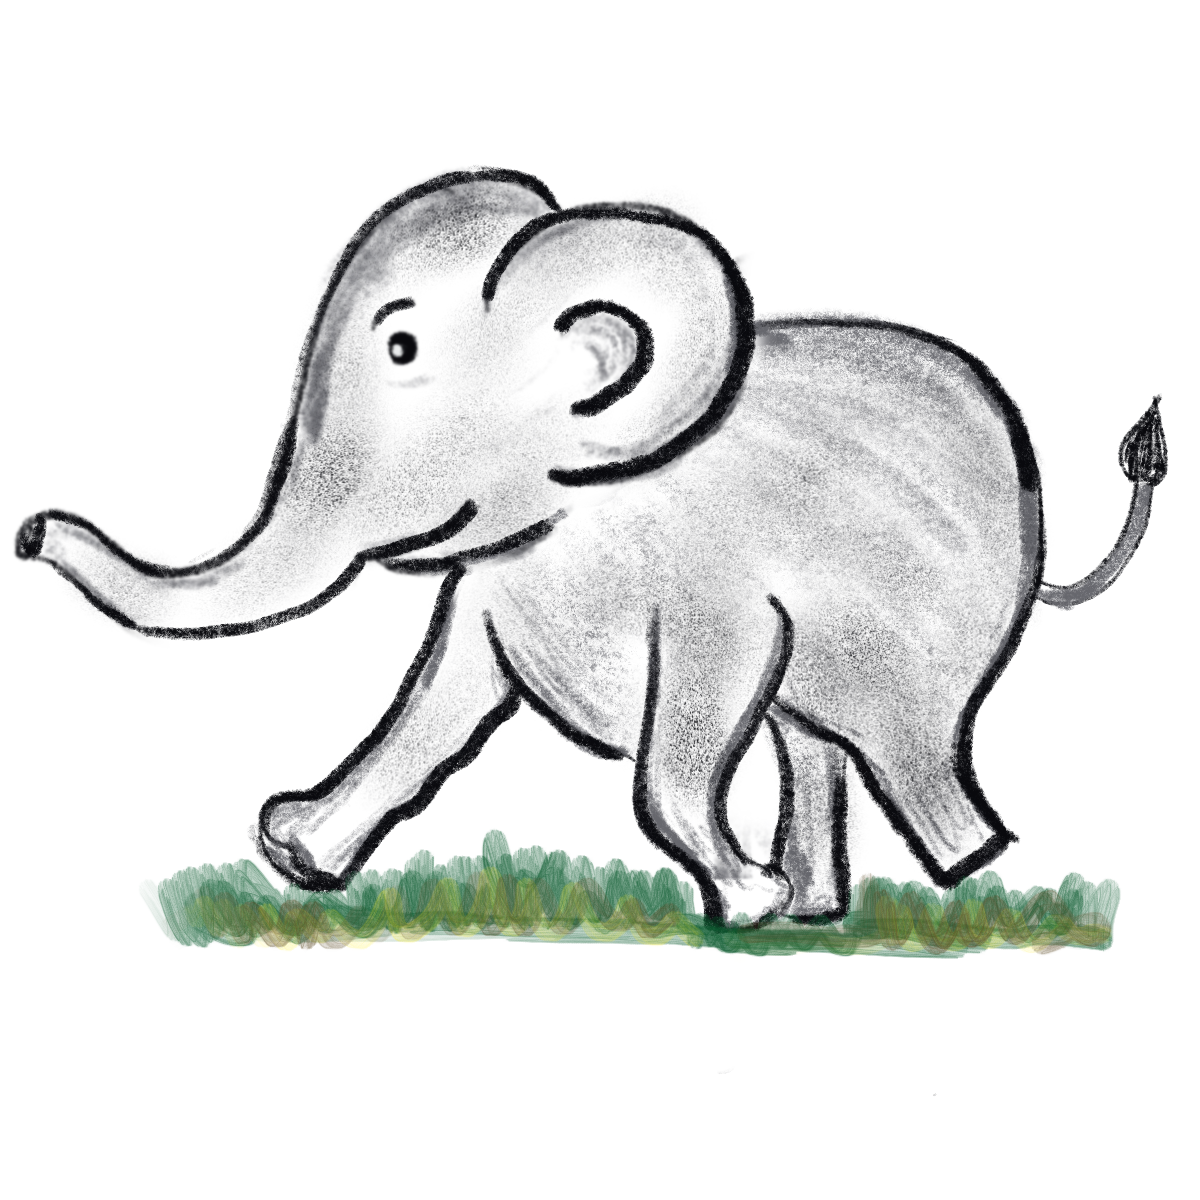 Baby Elephant Running Storyweaver Including transparent png clip art, cartoon, icon, logo, silhouette, watercolors, outlines, etc. storyweaver